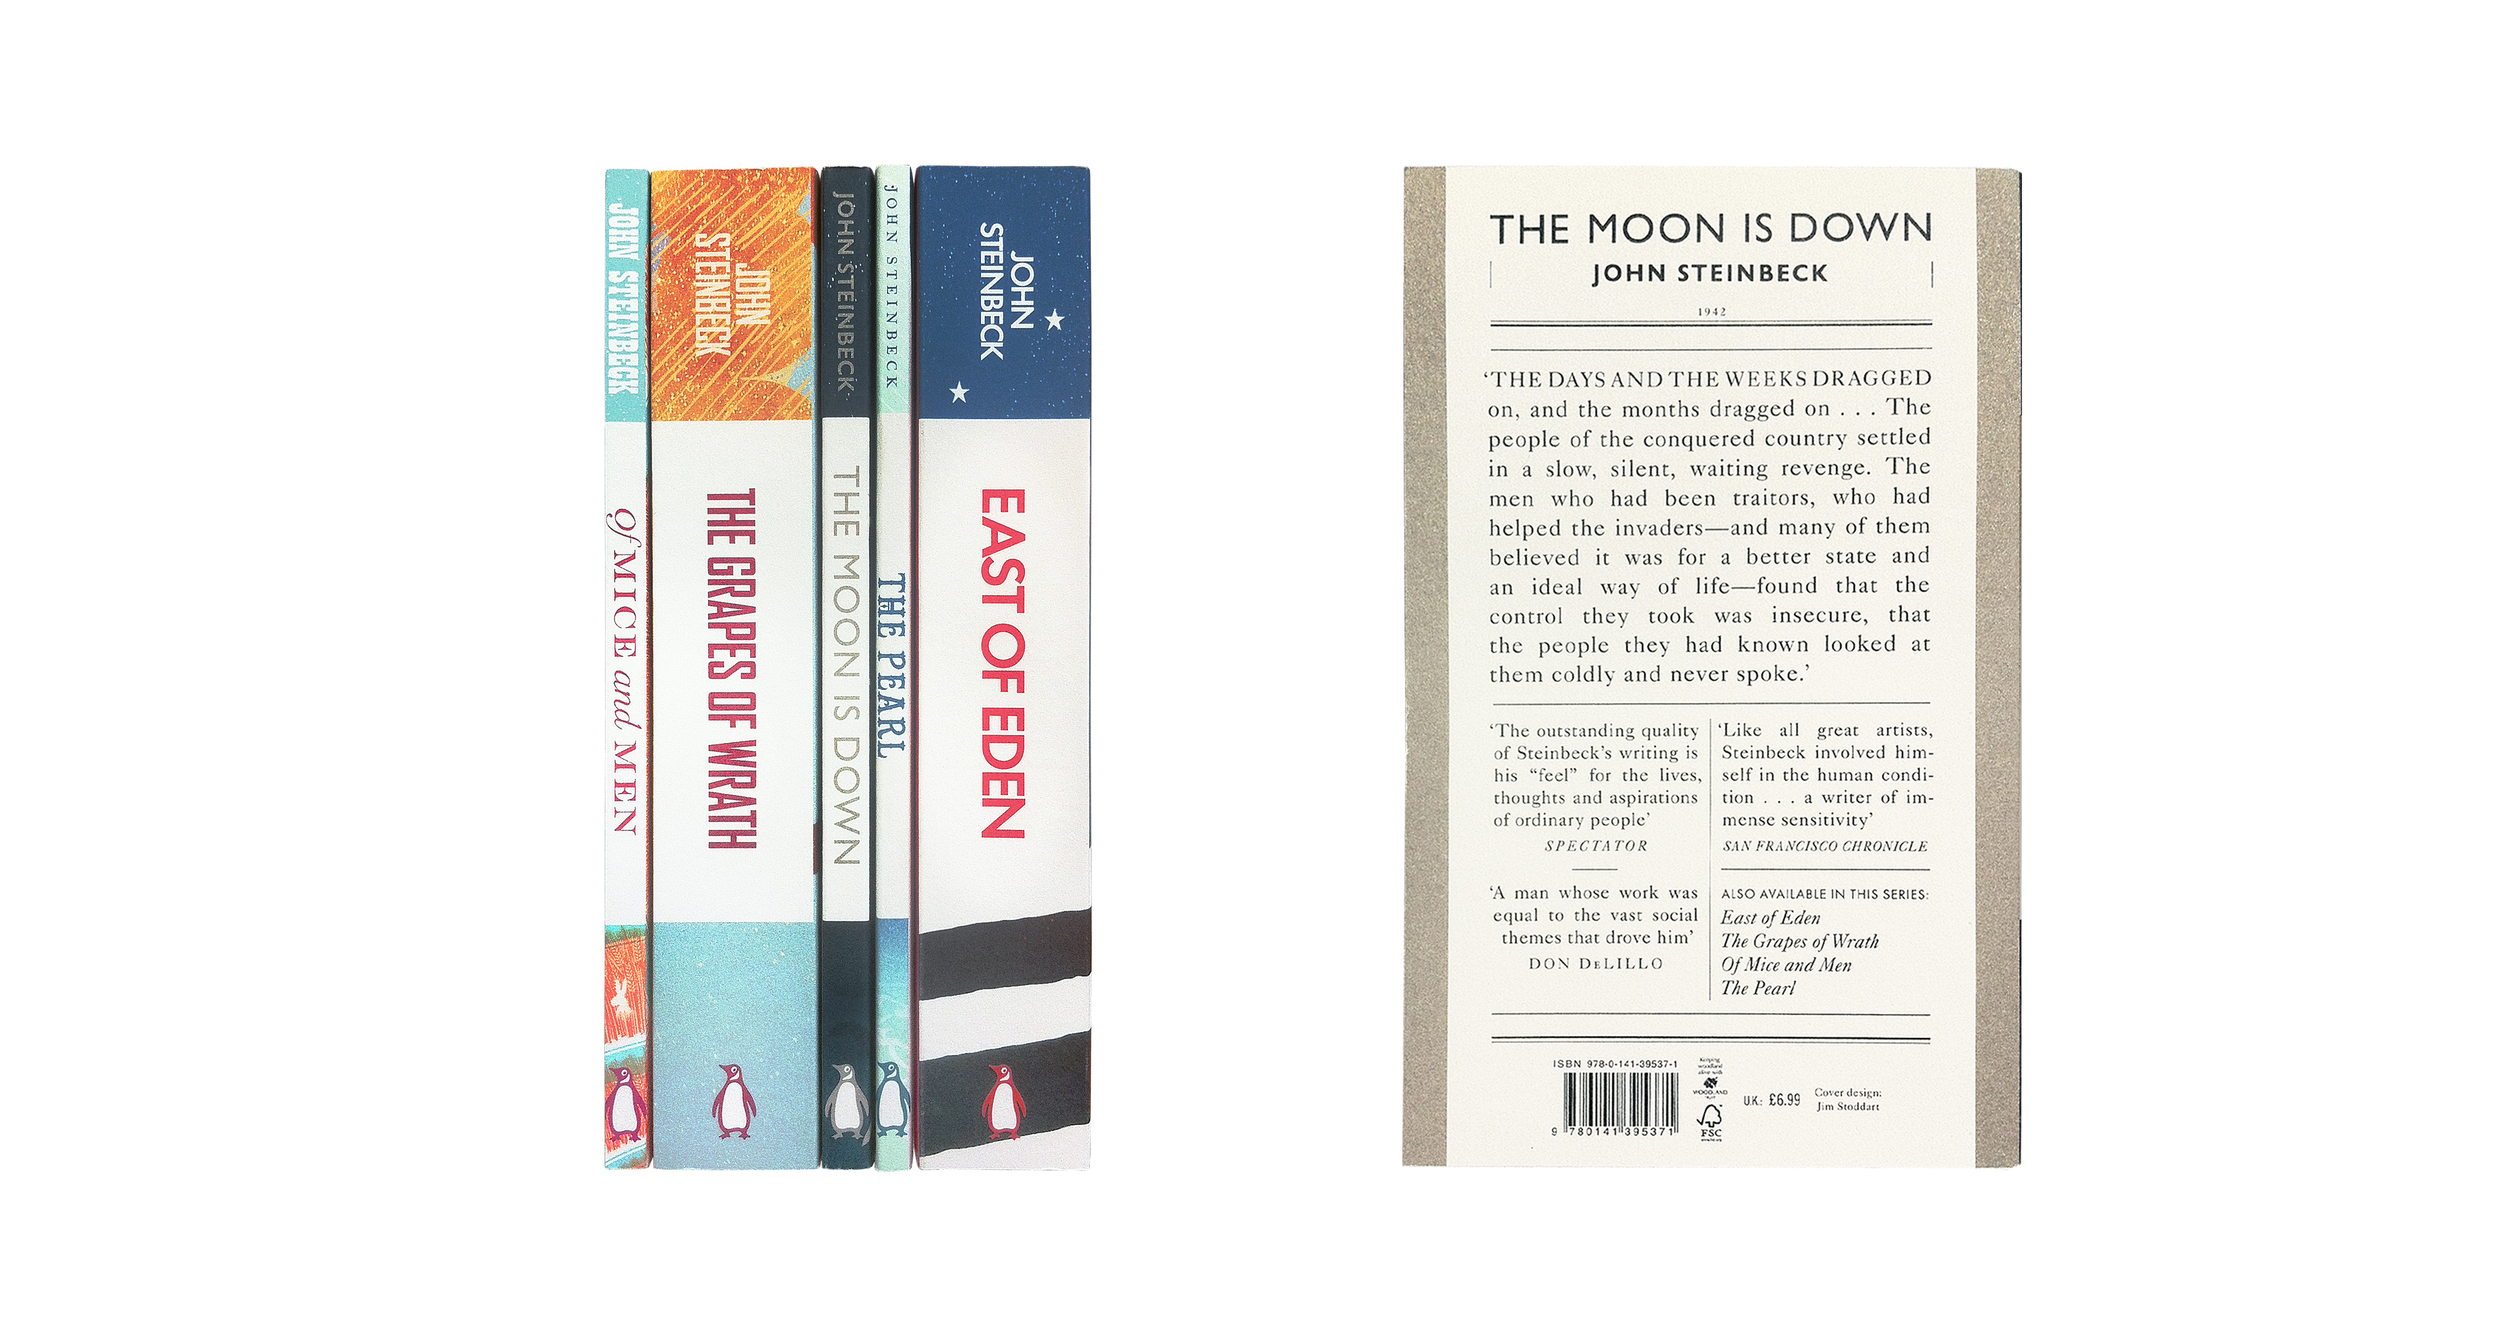 East of Eden; The Moon is Down; Of Mice and Men; The Grapes of Wrath; The Pearl by John Steinbeck Spines & Back Cover - Design: Jim Stoddart